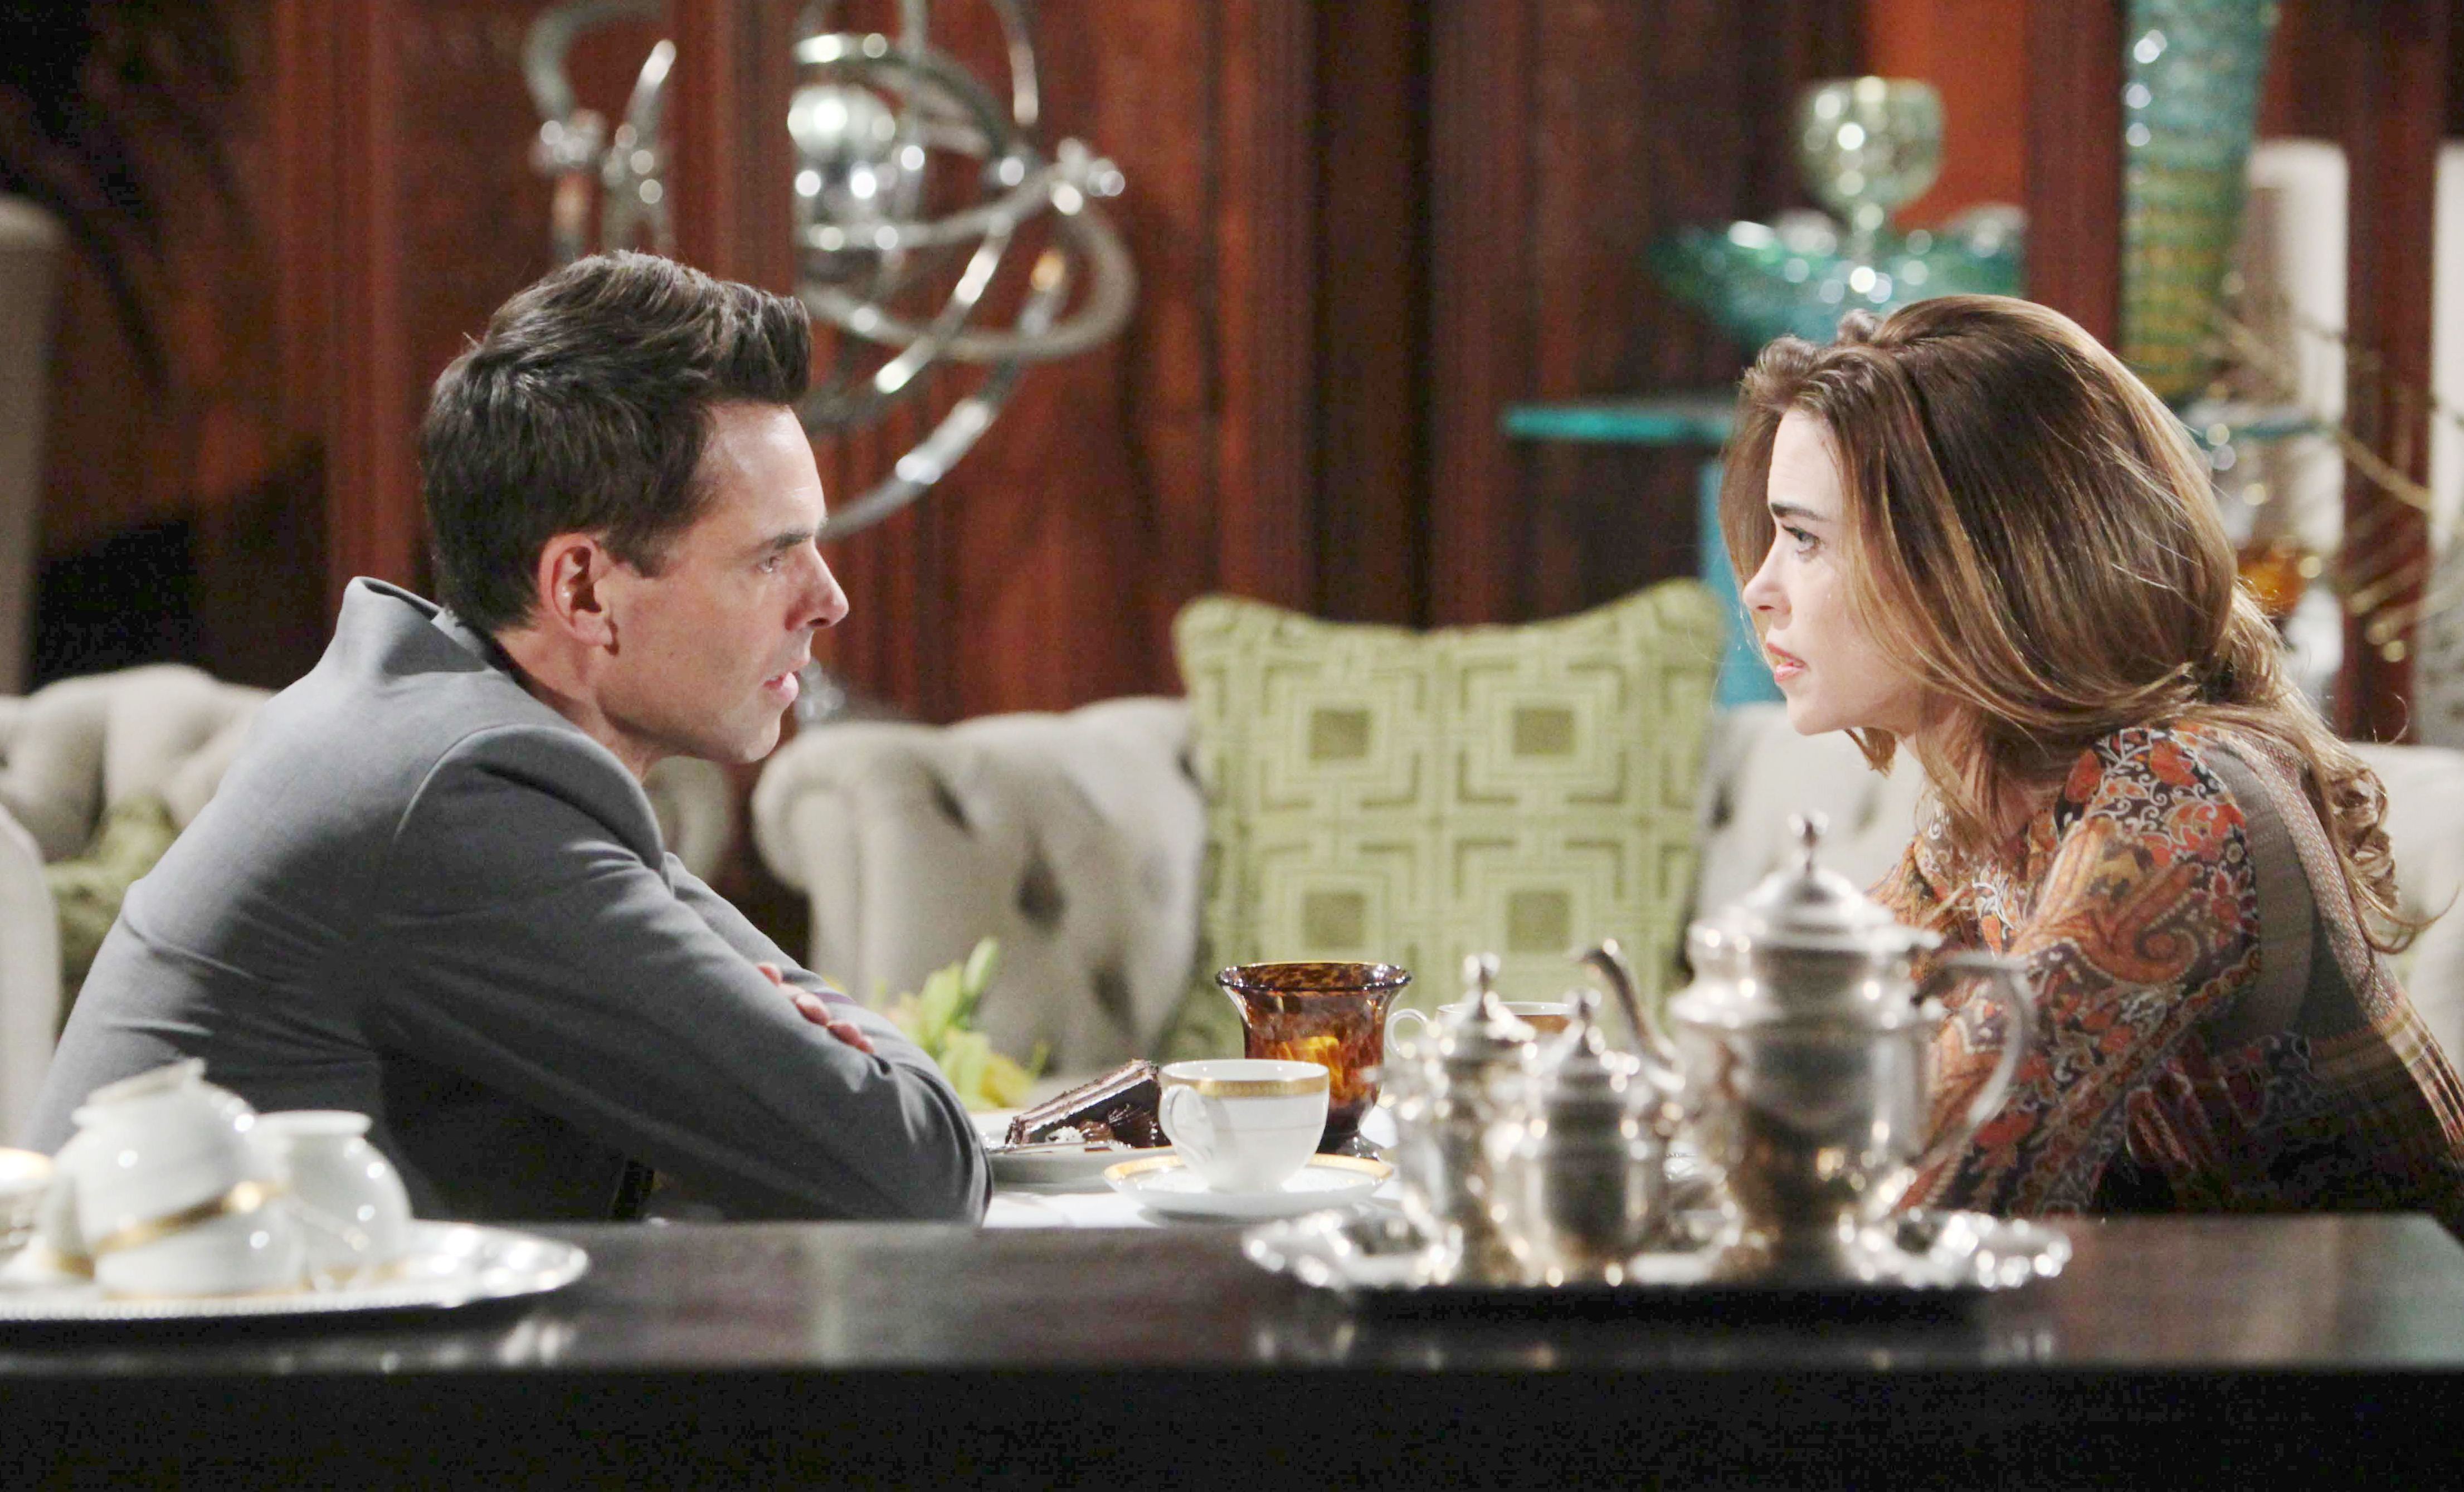 The Young and the Restless Spoilers: Coming Up July 28 – August 3